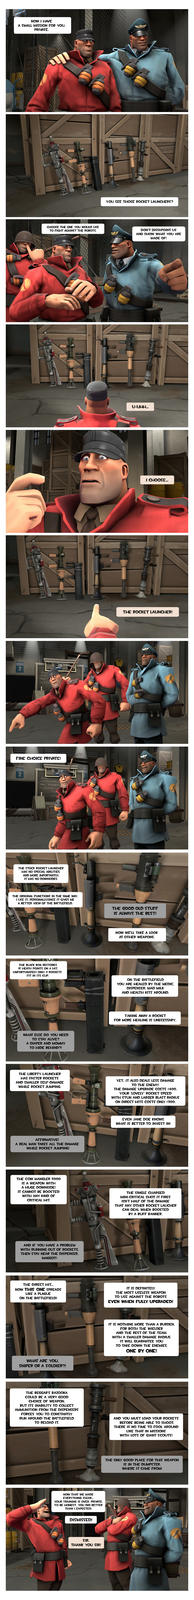 Strict Soldier's guide for MvM: Soldier (part 3)